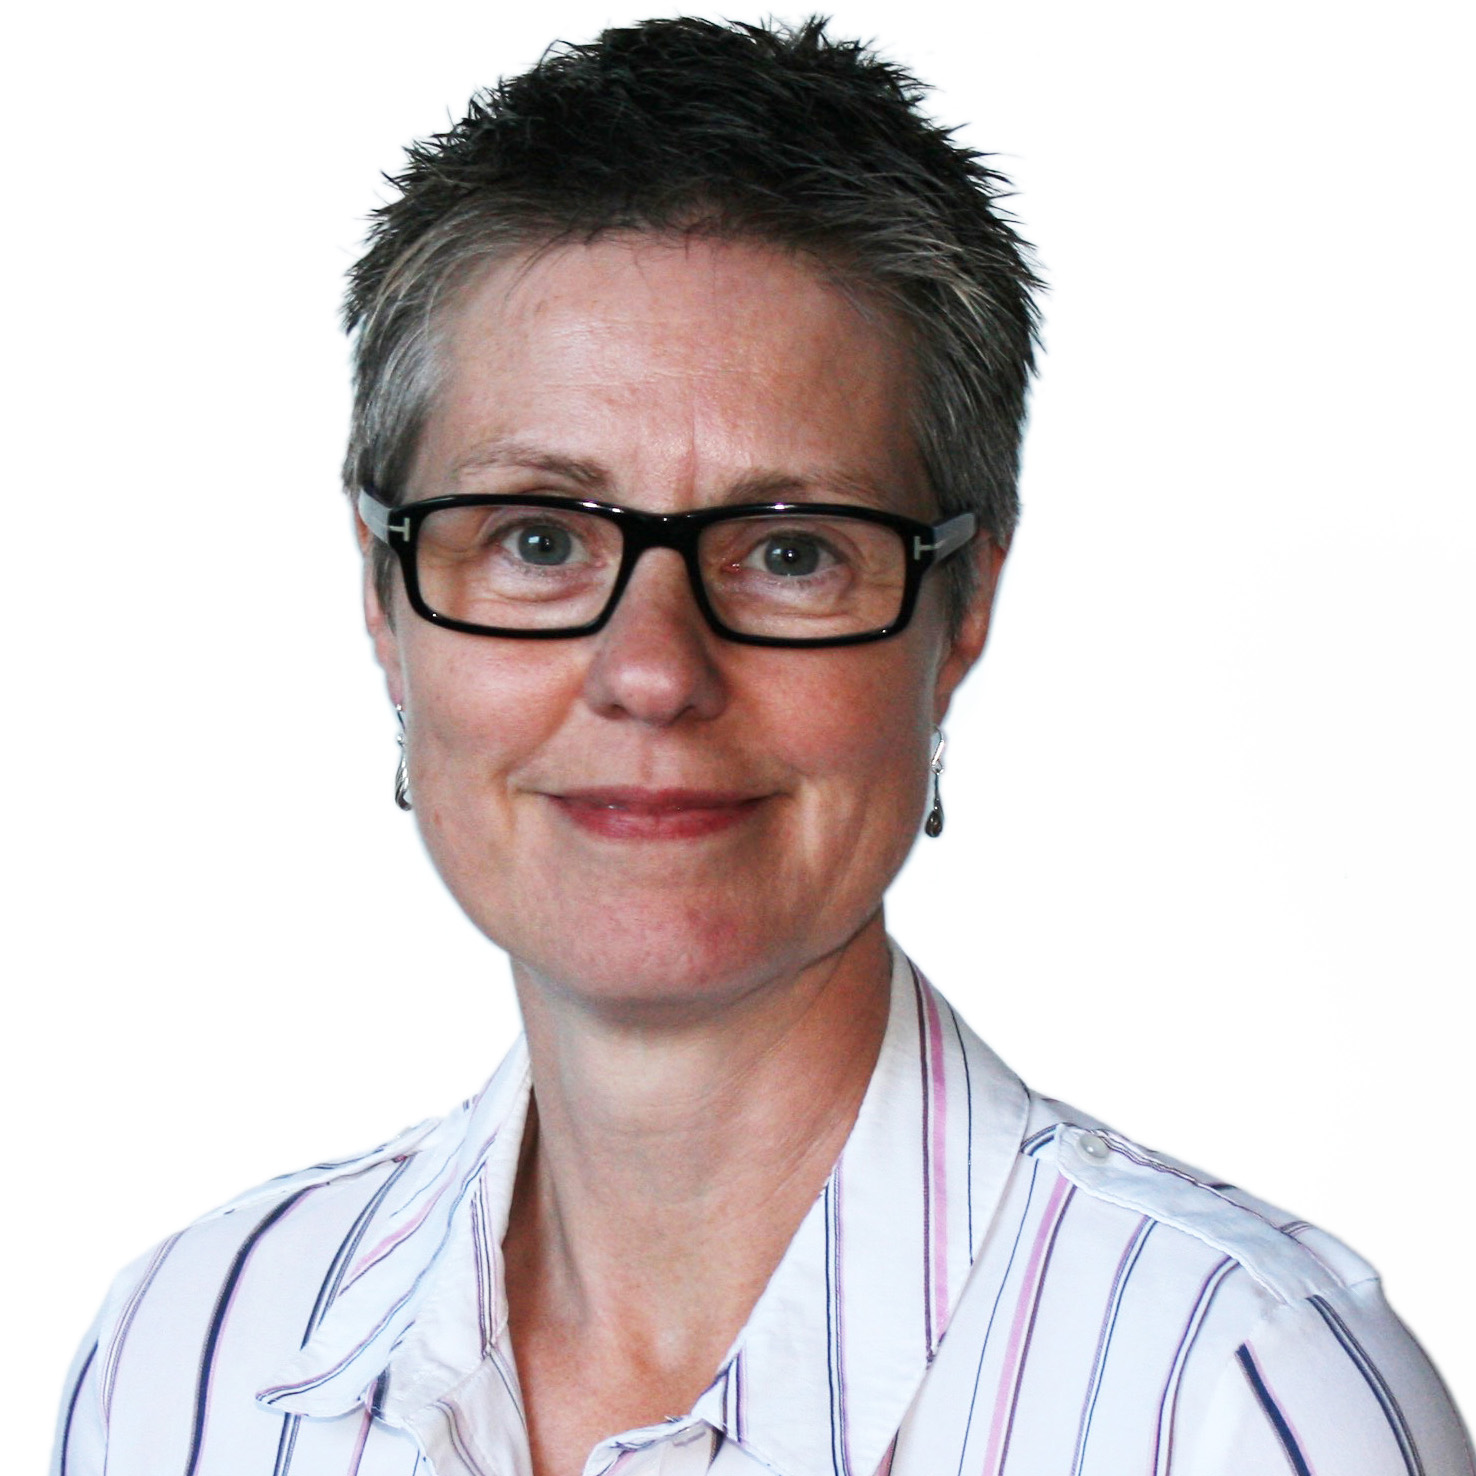 Lisa Tourret - Consultant Orthopaedic Hand Surgeon